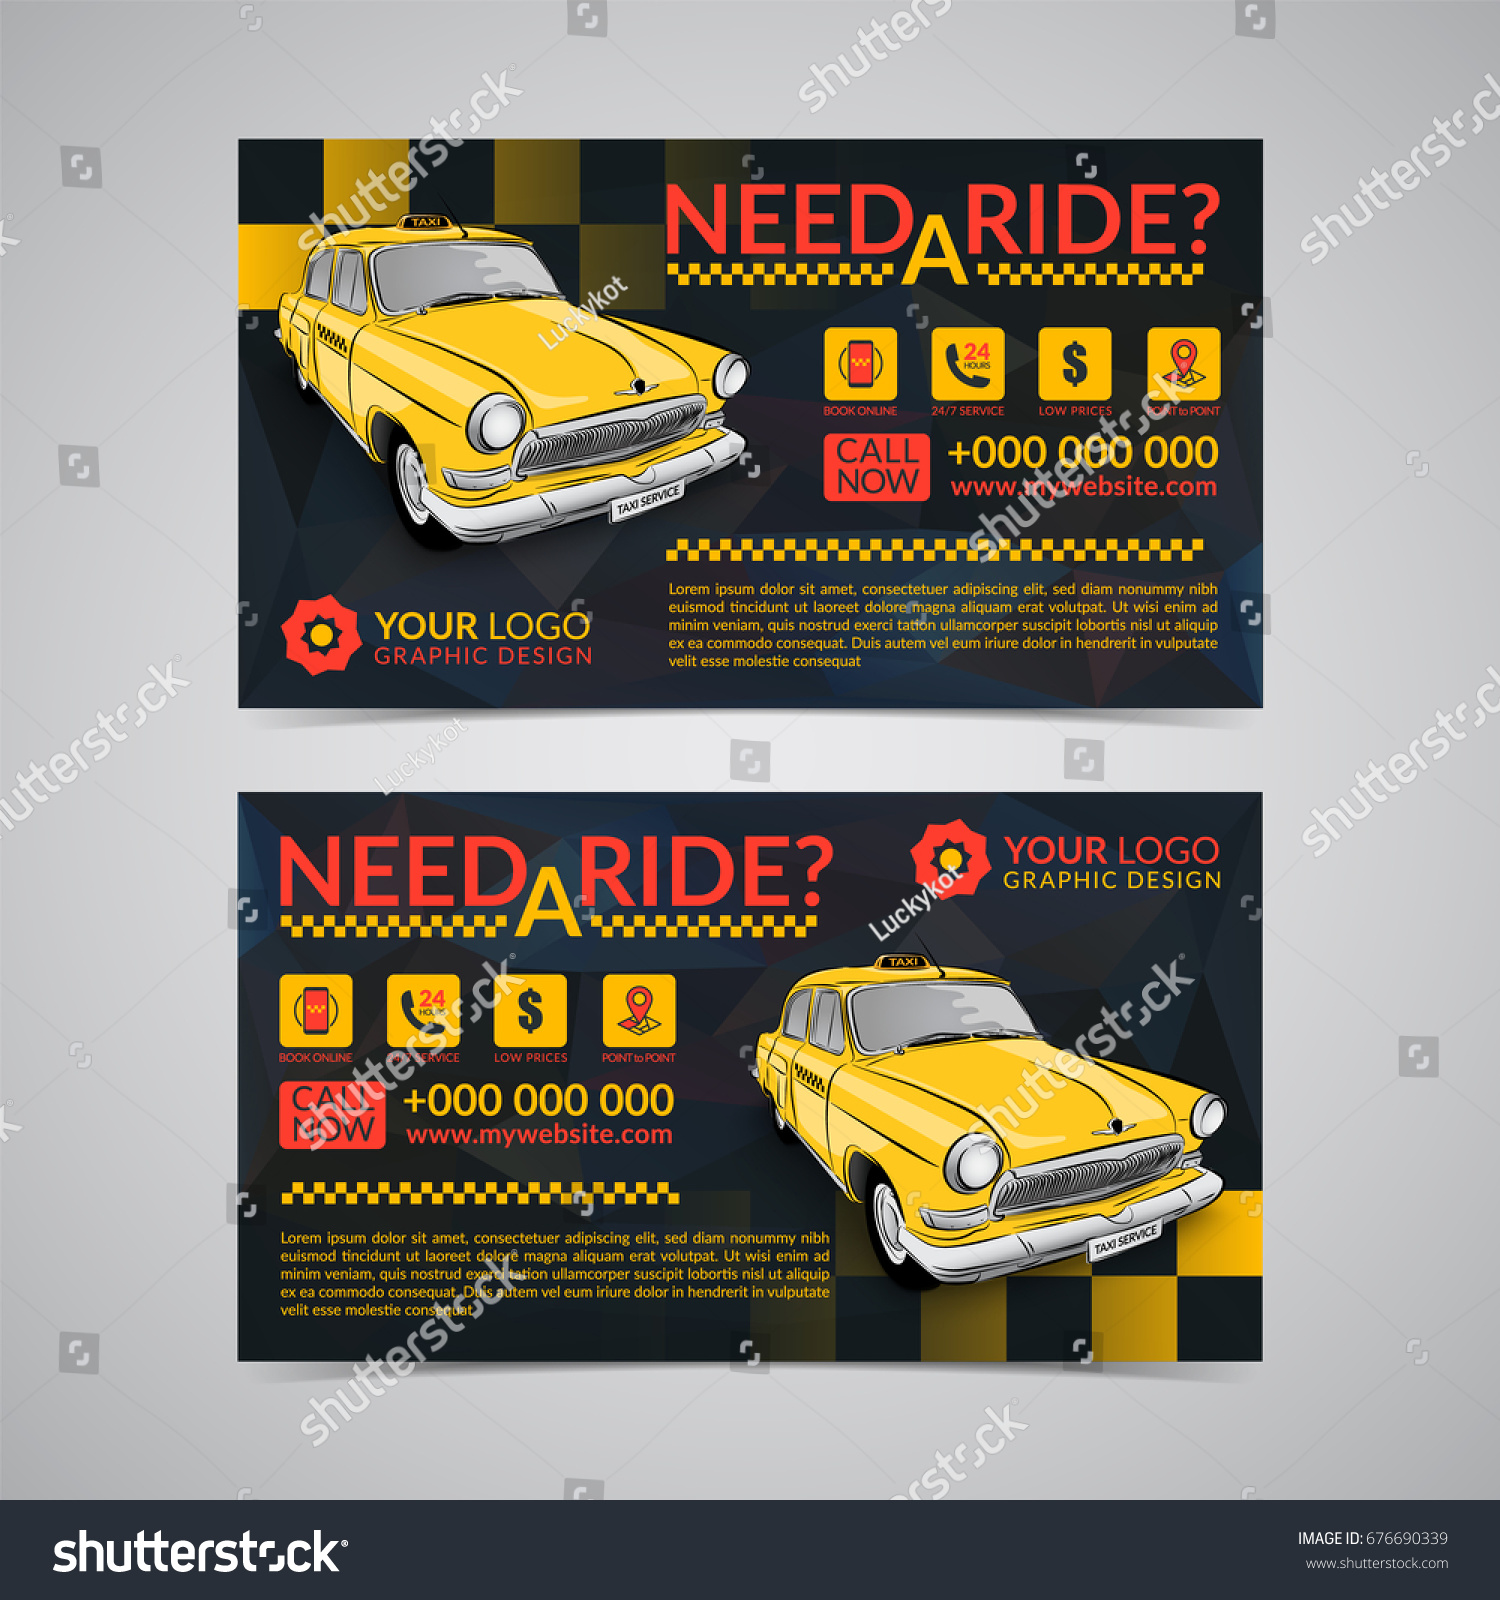 Pick up business cards image collections free business cards taxi pickup service business card layout stock vector 676690339 taxi pickup service business card layout template magicingreecefo Gallery